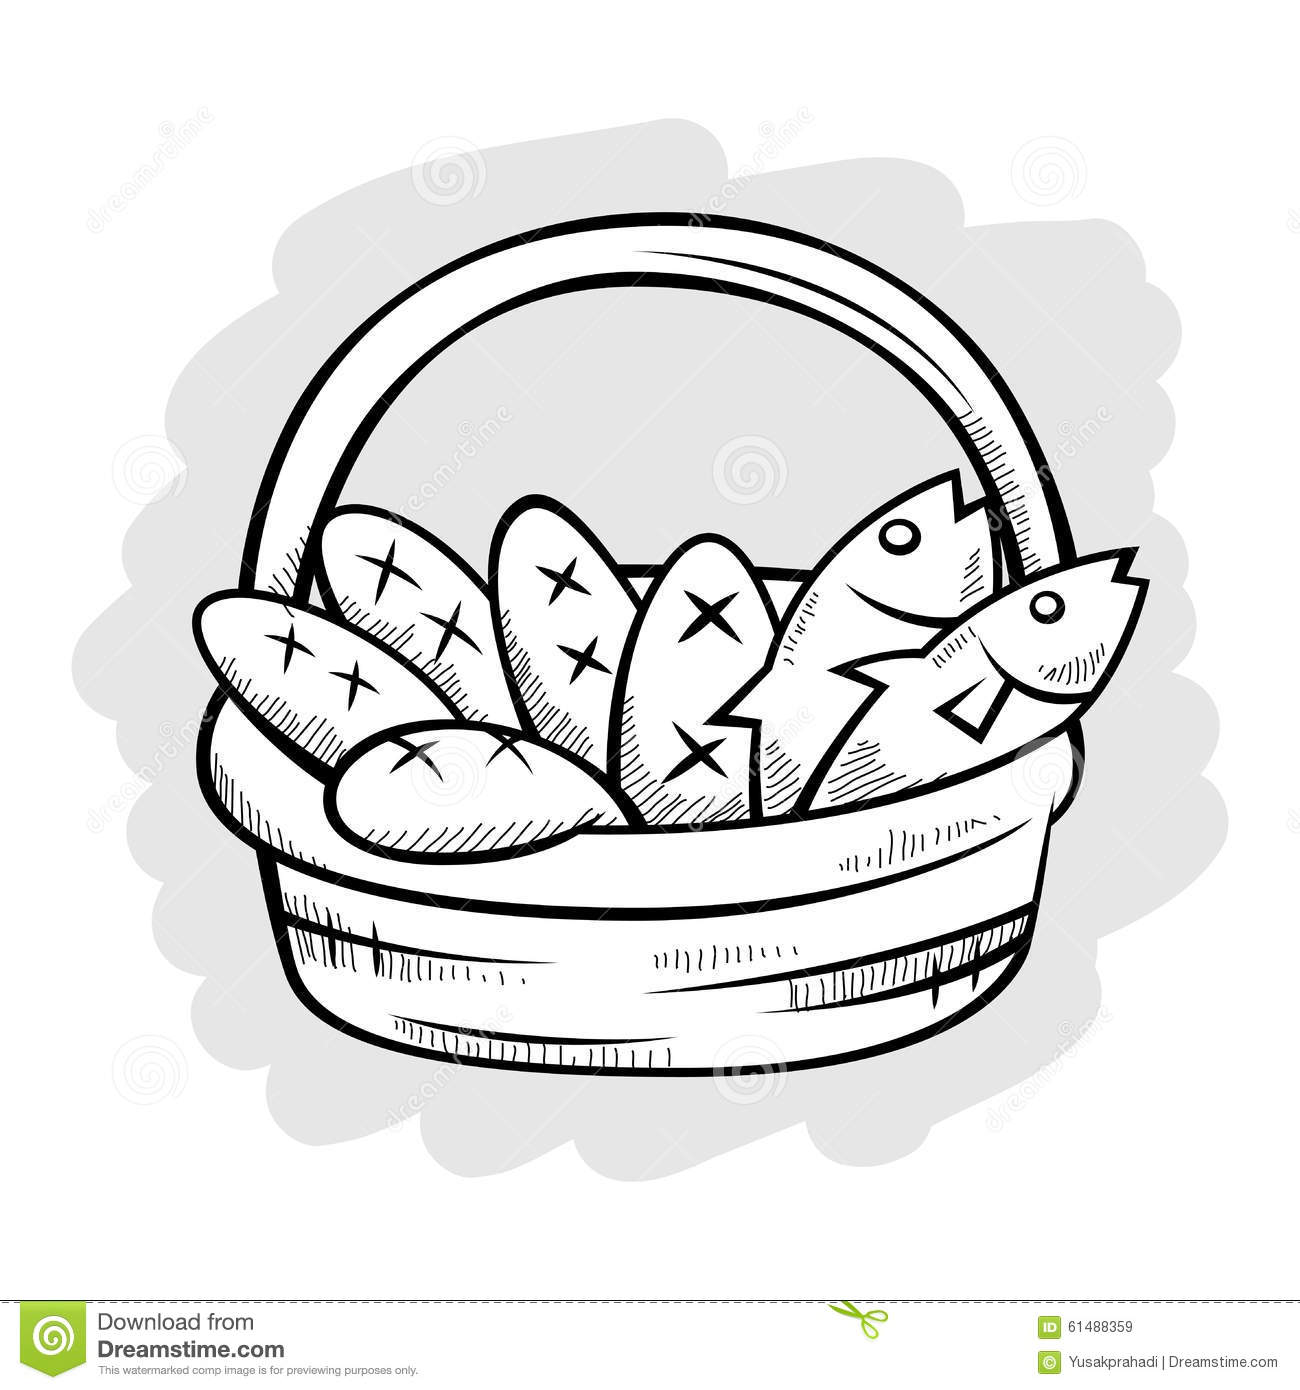 Five Bread And Two Fish In A Basket Line Art Stock Vector